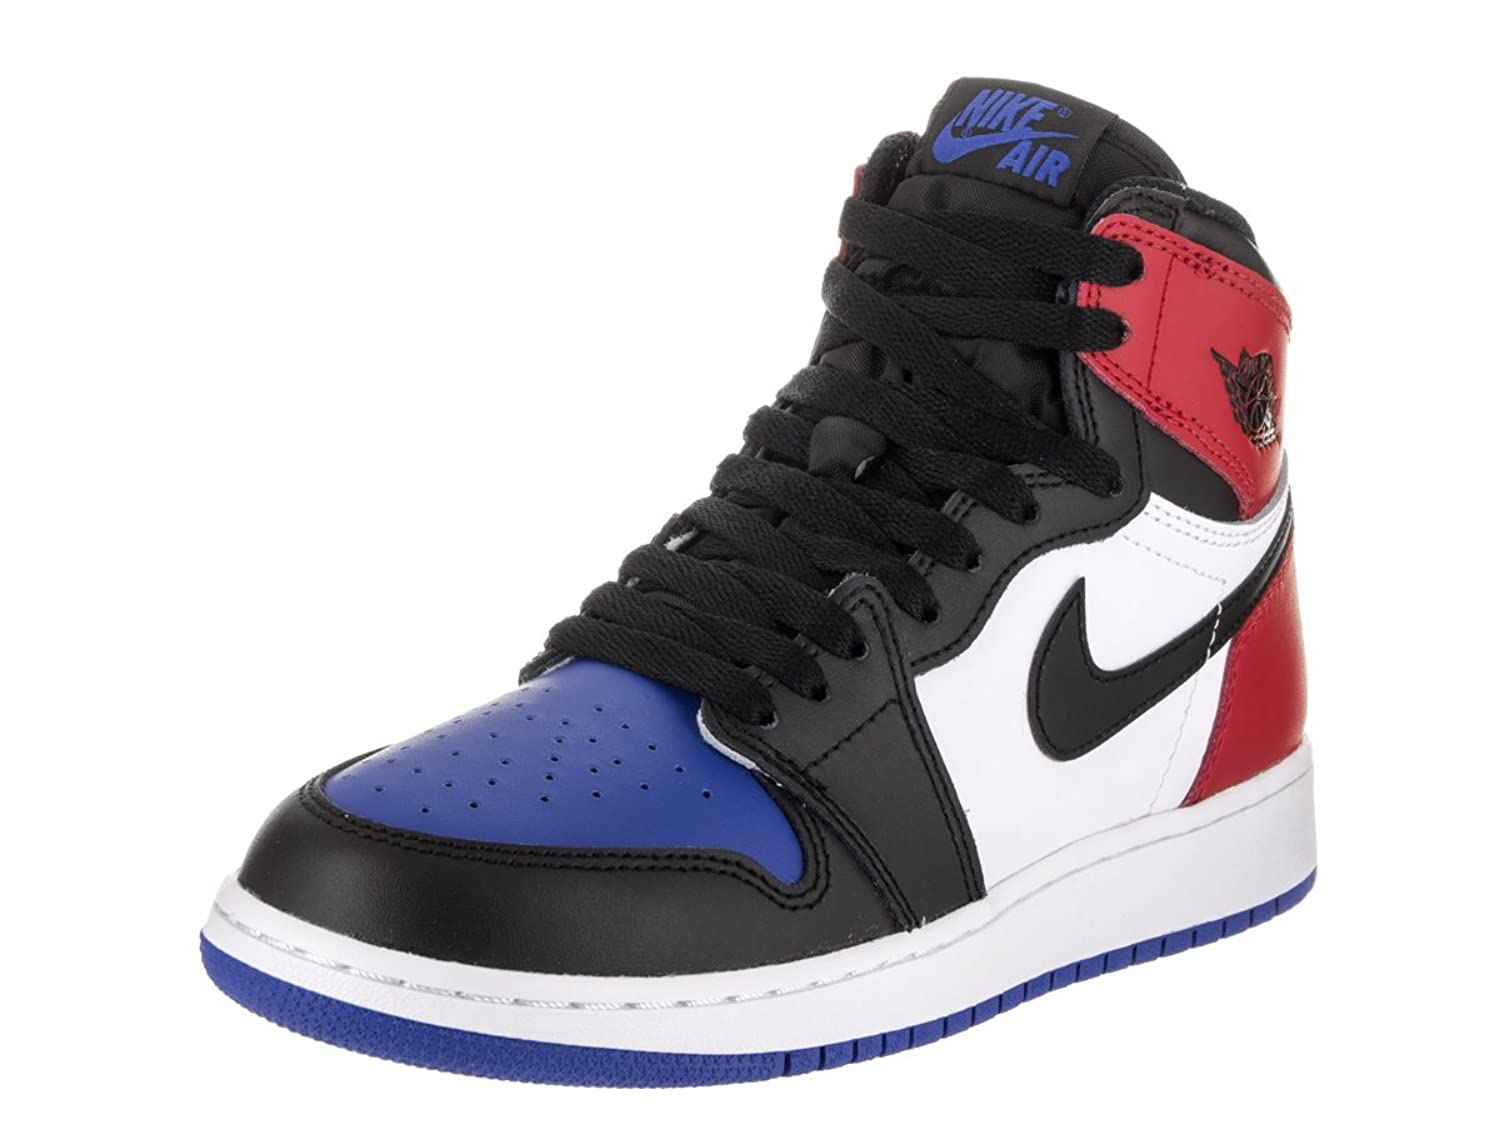 Amazon.com  Nike Air Jordan 1 Retro High Top 3 Pick OG BG LTD Sneaker  Current Collection black  white  blue  red  Basketball